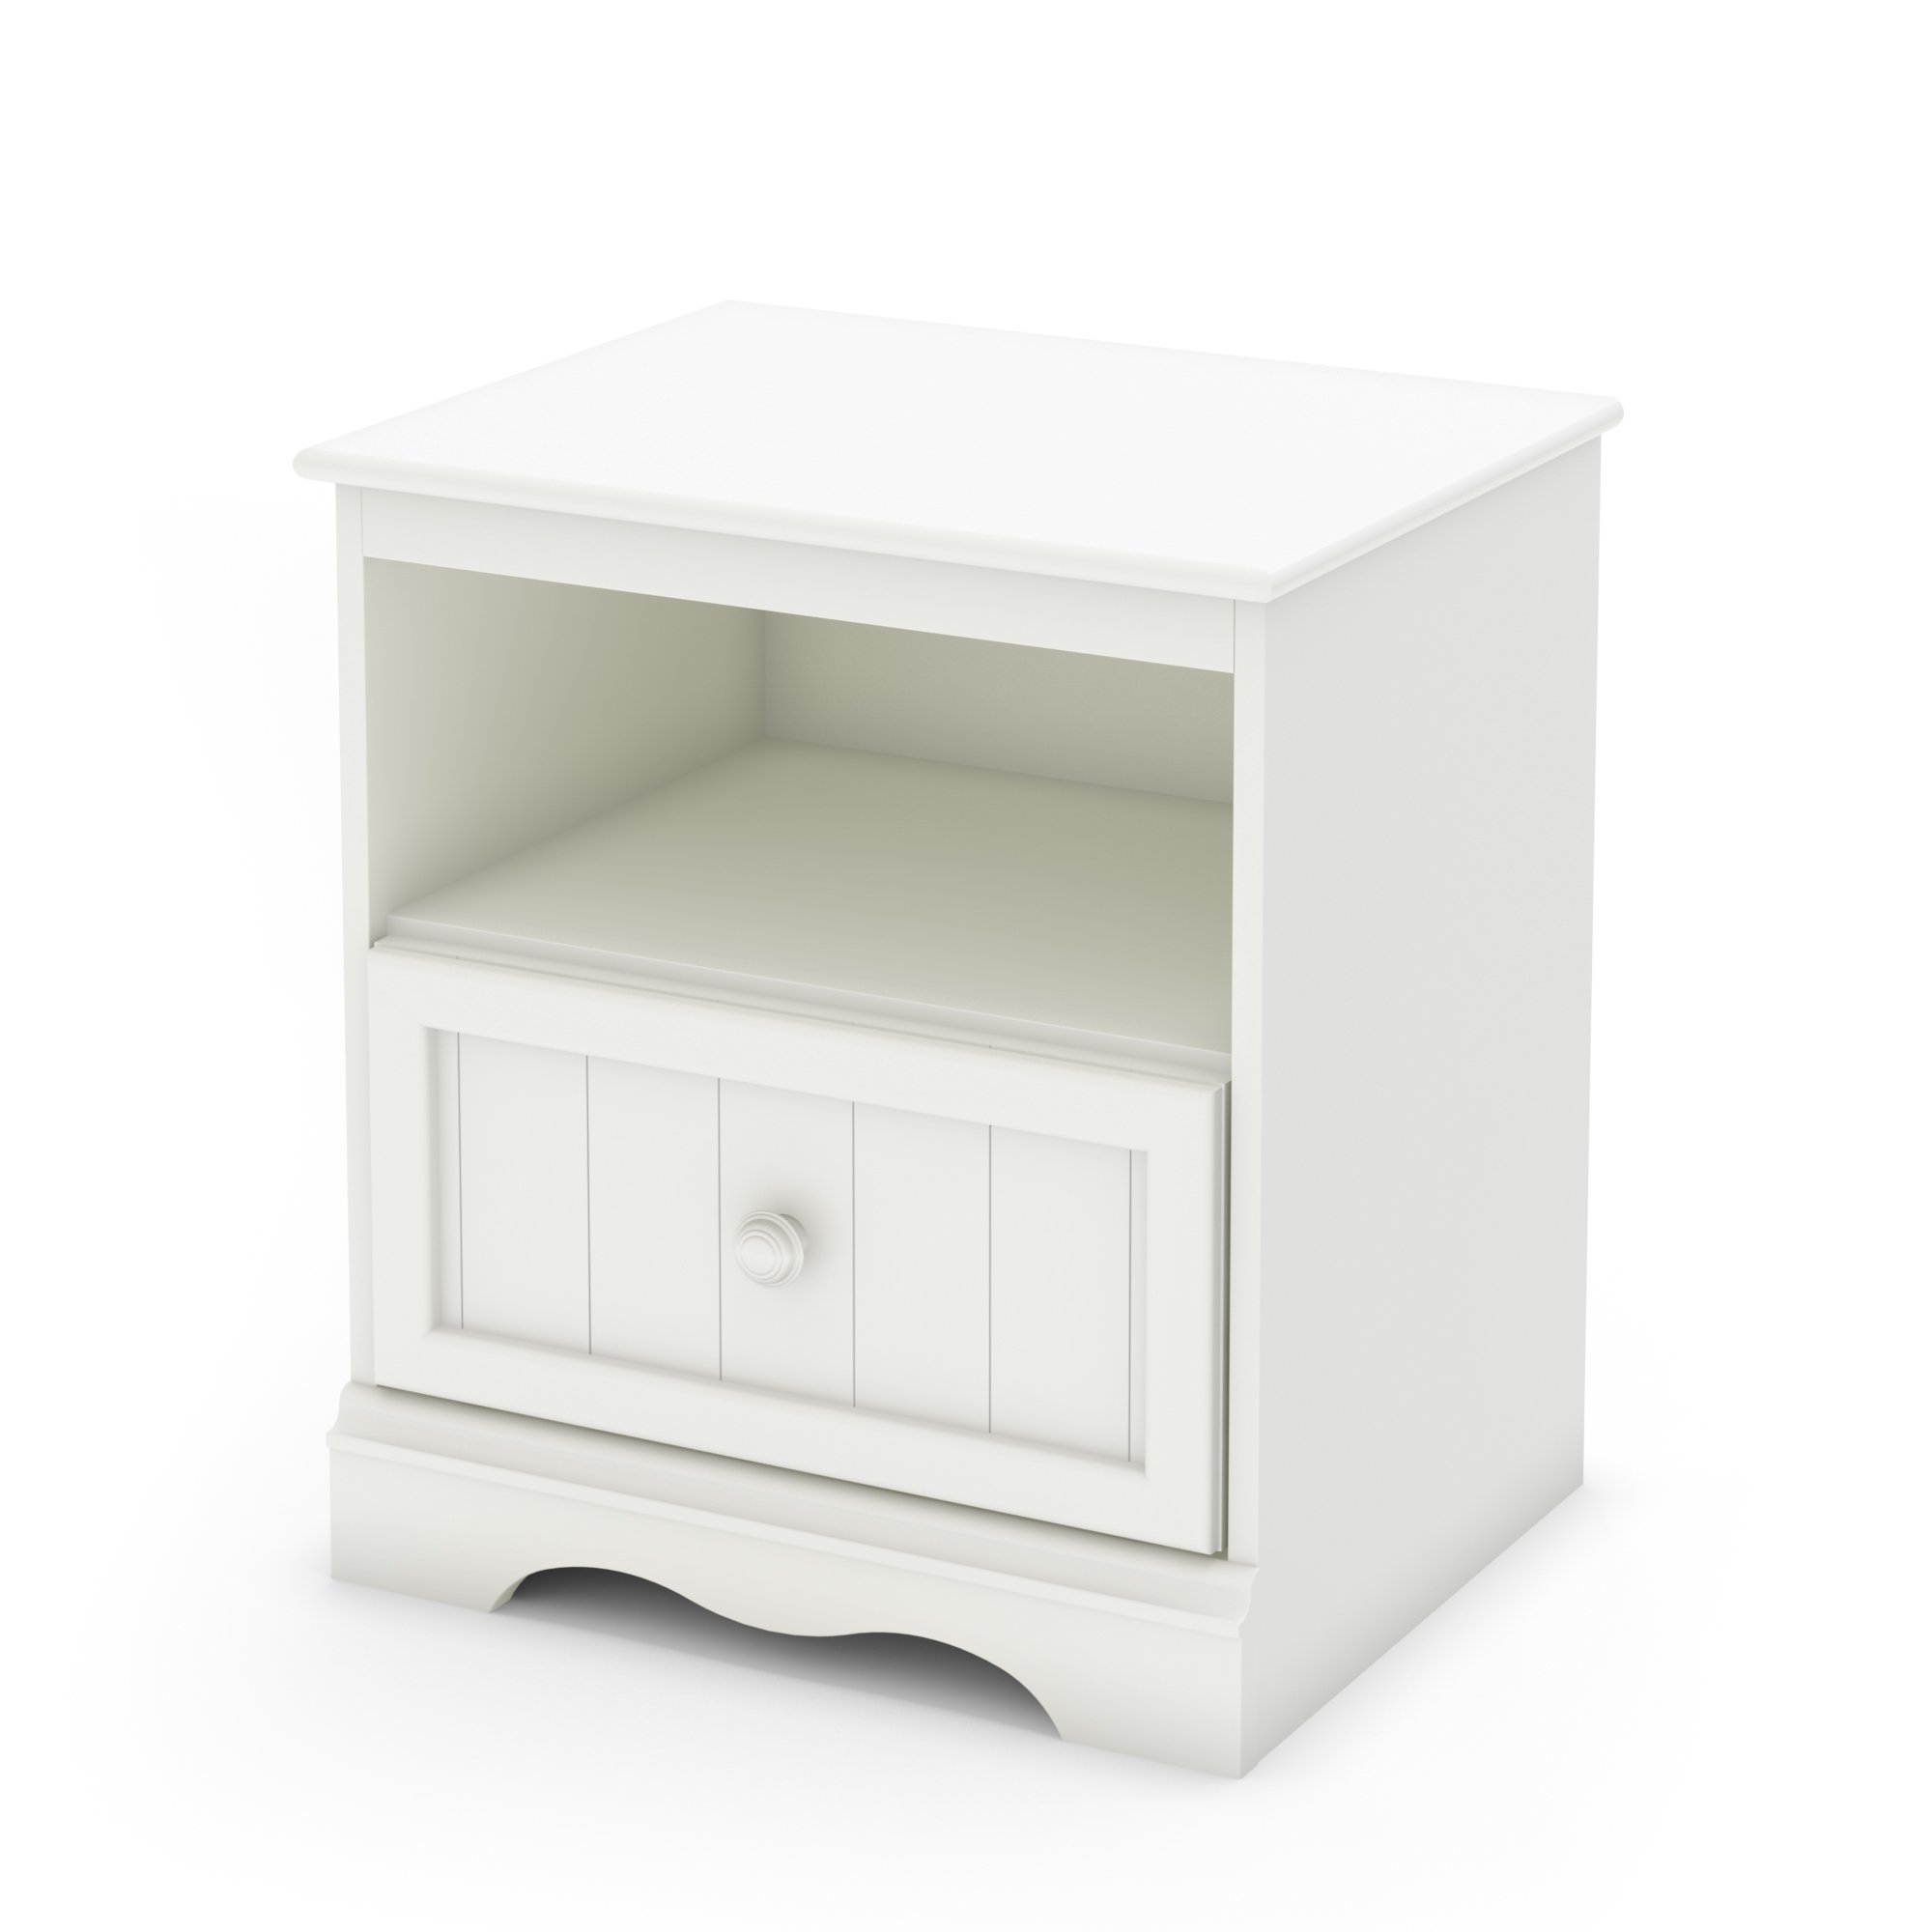 South Shore Savannah Collection Nightstand - Pure White by South Shore